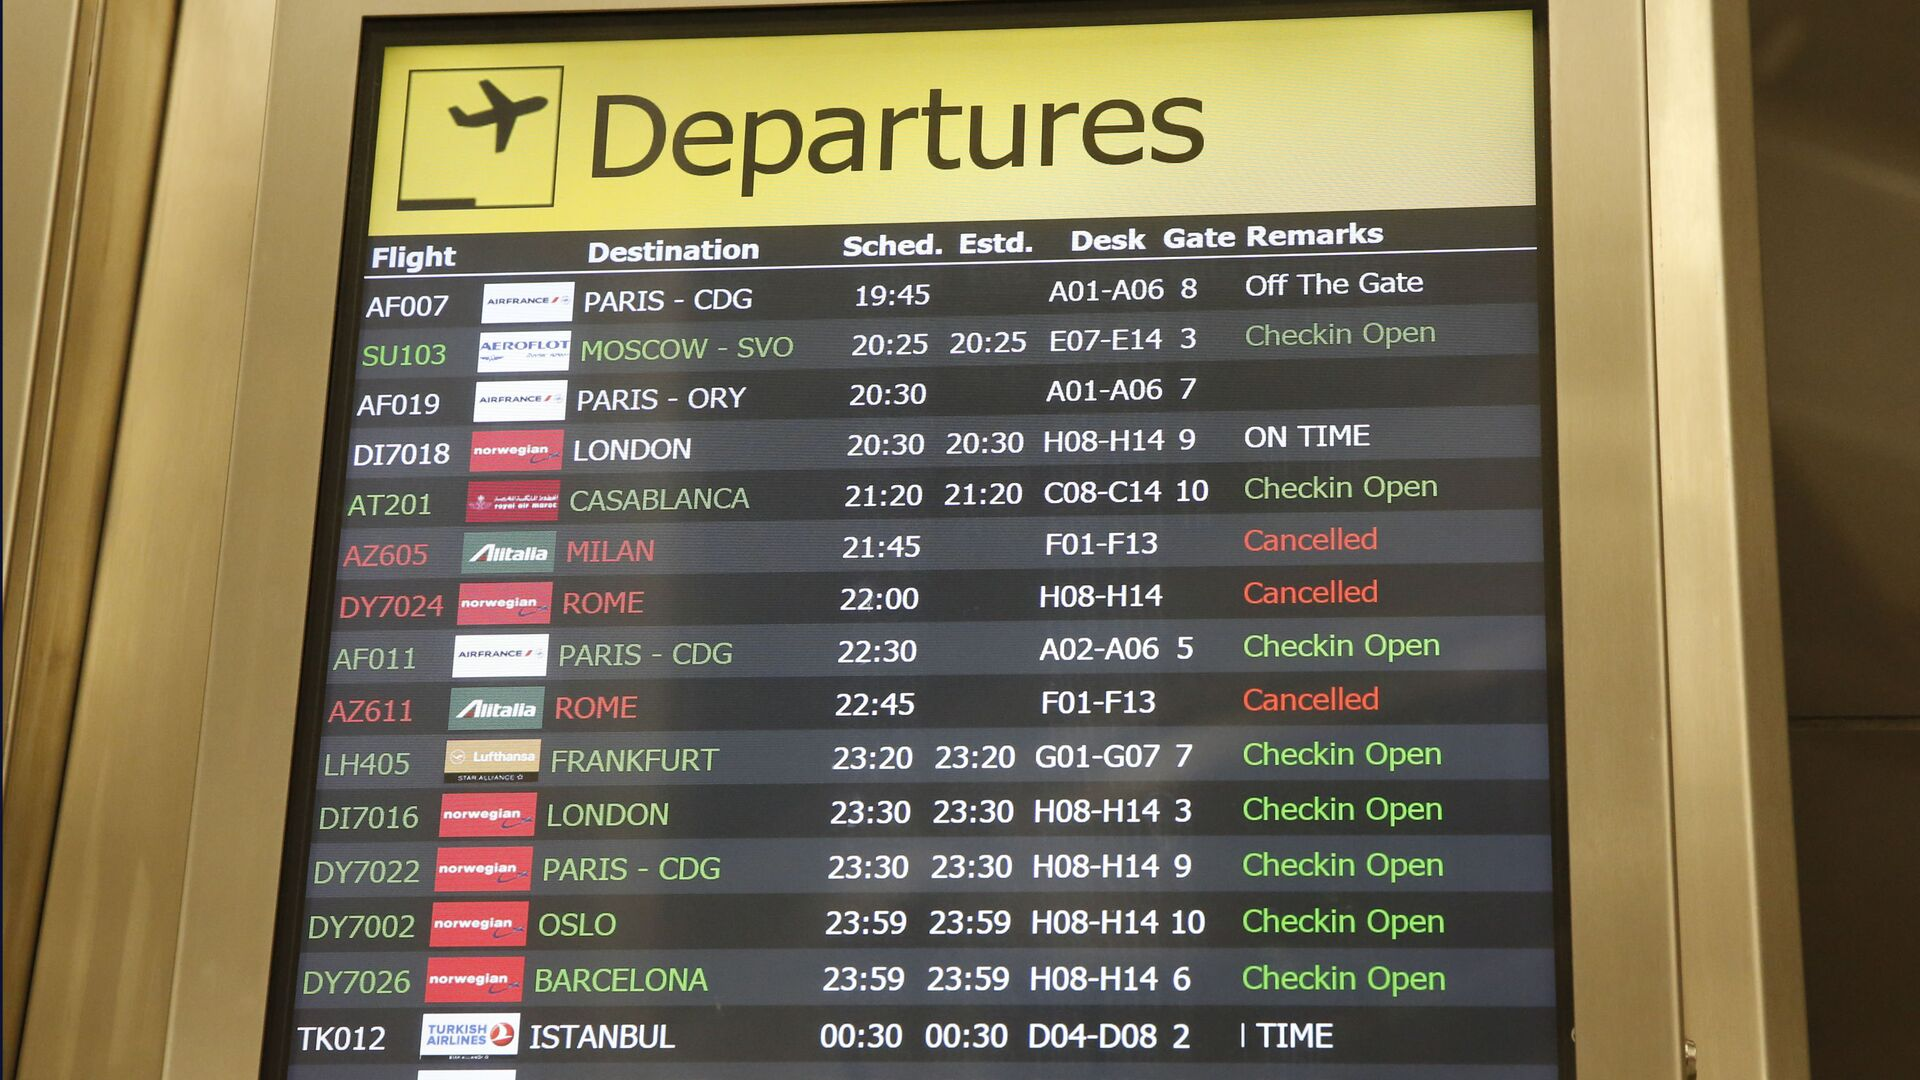 Several airlines with canceled flights are shown on a departures board at JFK airport's Terminal 1, Friday, March 13, 2020, in New York. The coronavirus outbreak is affecting the airline industry hard. Travelers from most European countries to the United States are banned for the next 30 days after President Trump announced the ban earlier in the week. Returning passengers will be screened. The global travel industry is already reeling from falling bookings and canceled reservations as people try to avoid contracting and spreading the virus. - Sputnik Italia, 1920, 08.02.2021